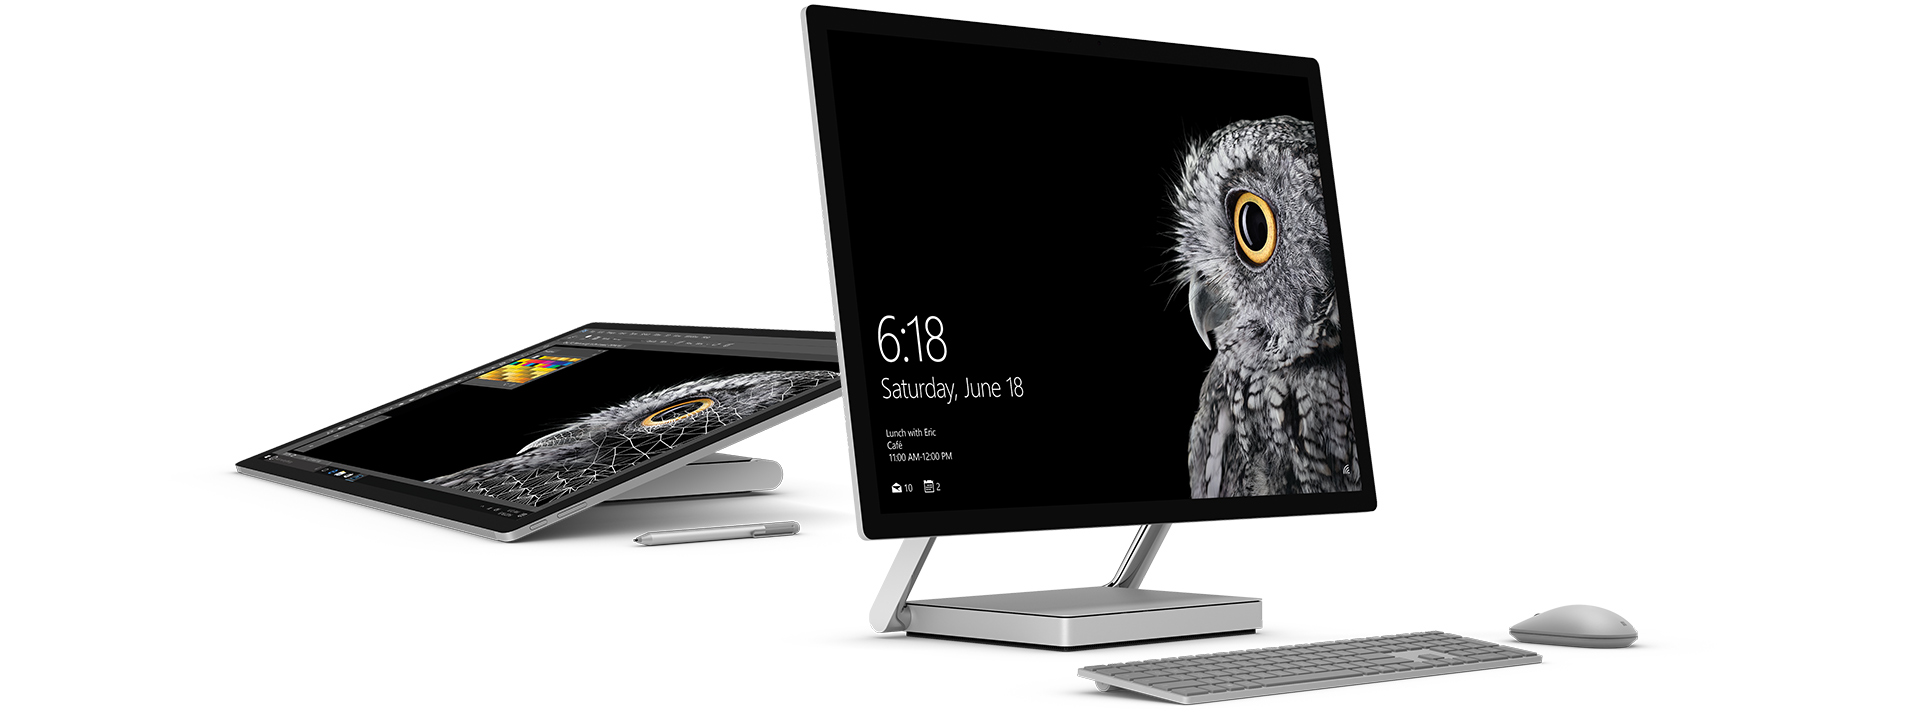 The Surface Studio is nothing if not good looking. The significance of June 18? That's when the first Surface was announced.